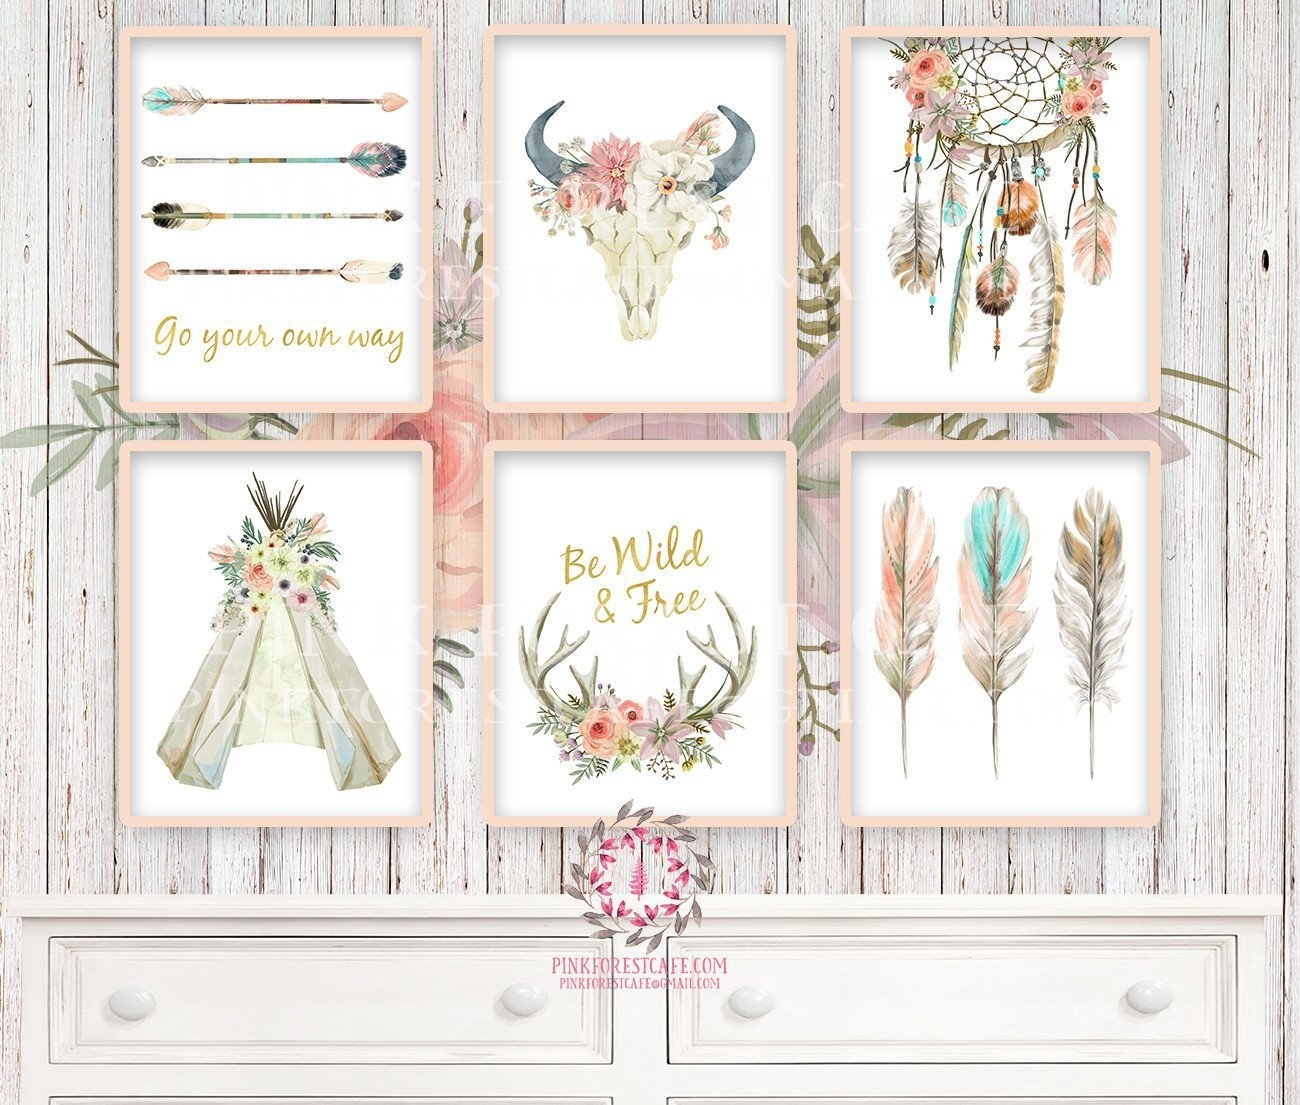 Boho Nursery Print Wall Art Set Of 6 Teepee Antlers, Bohemian With Regard To Most Recent Bohemian Wall Art (Gallery 17 of 20)